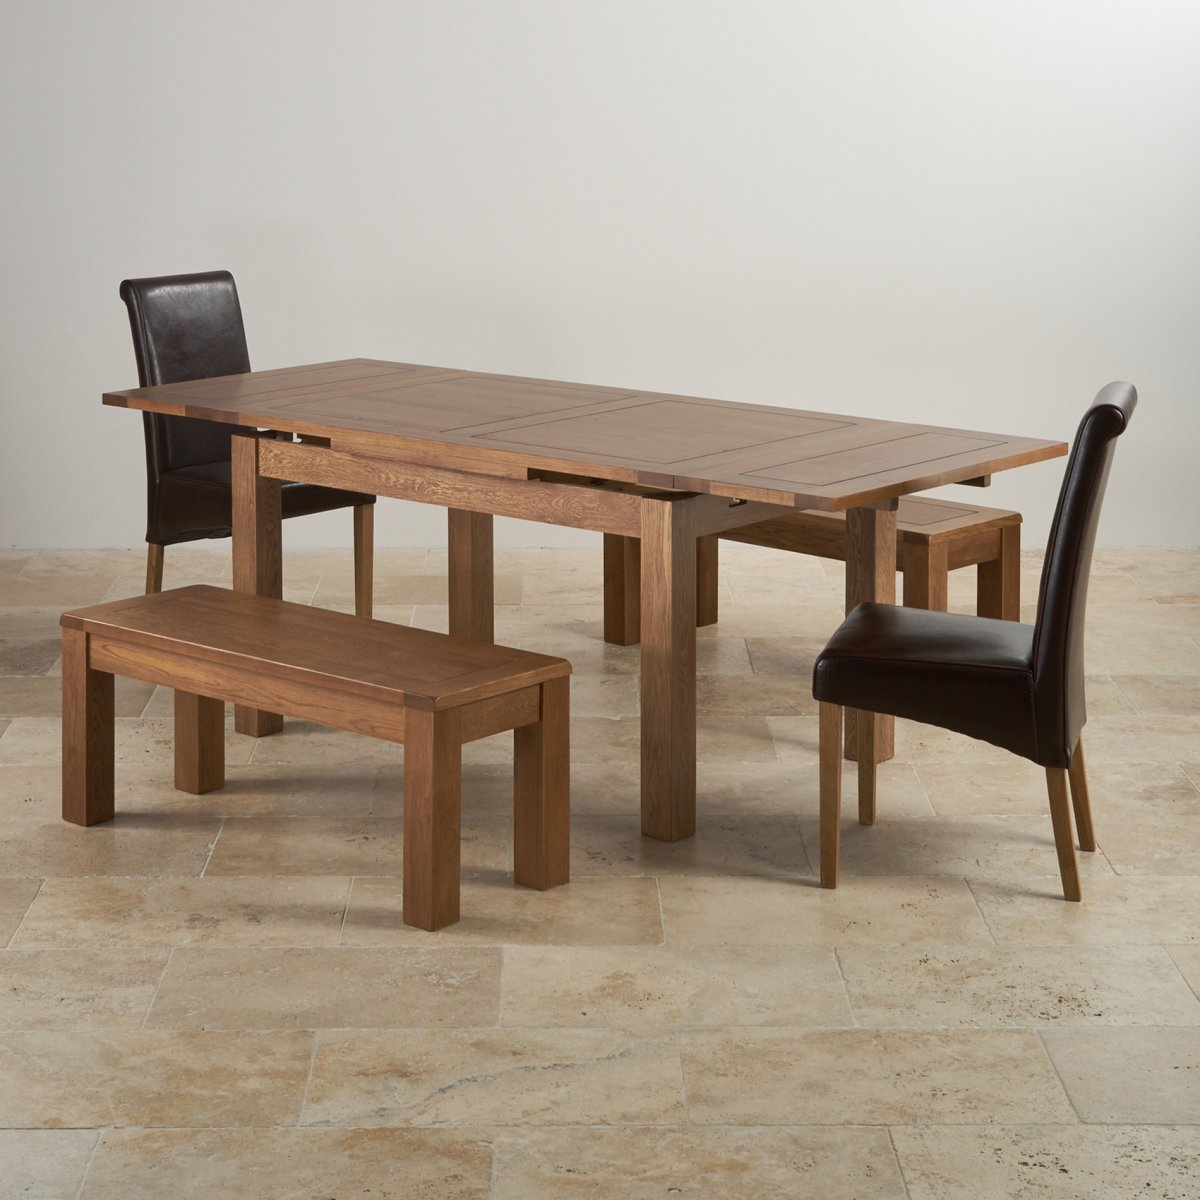 2 x 4 dining chairs futon target rustic oak set extending table 43 benches and